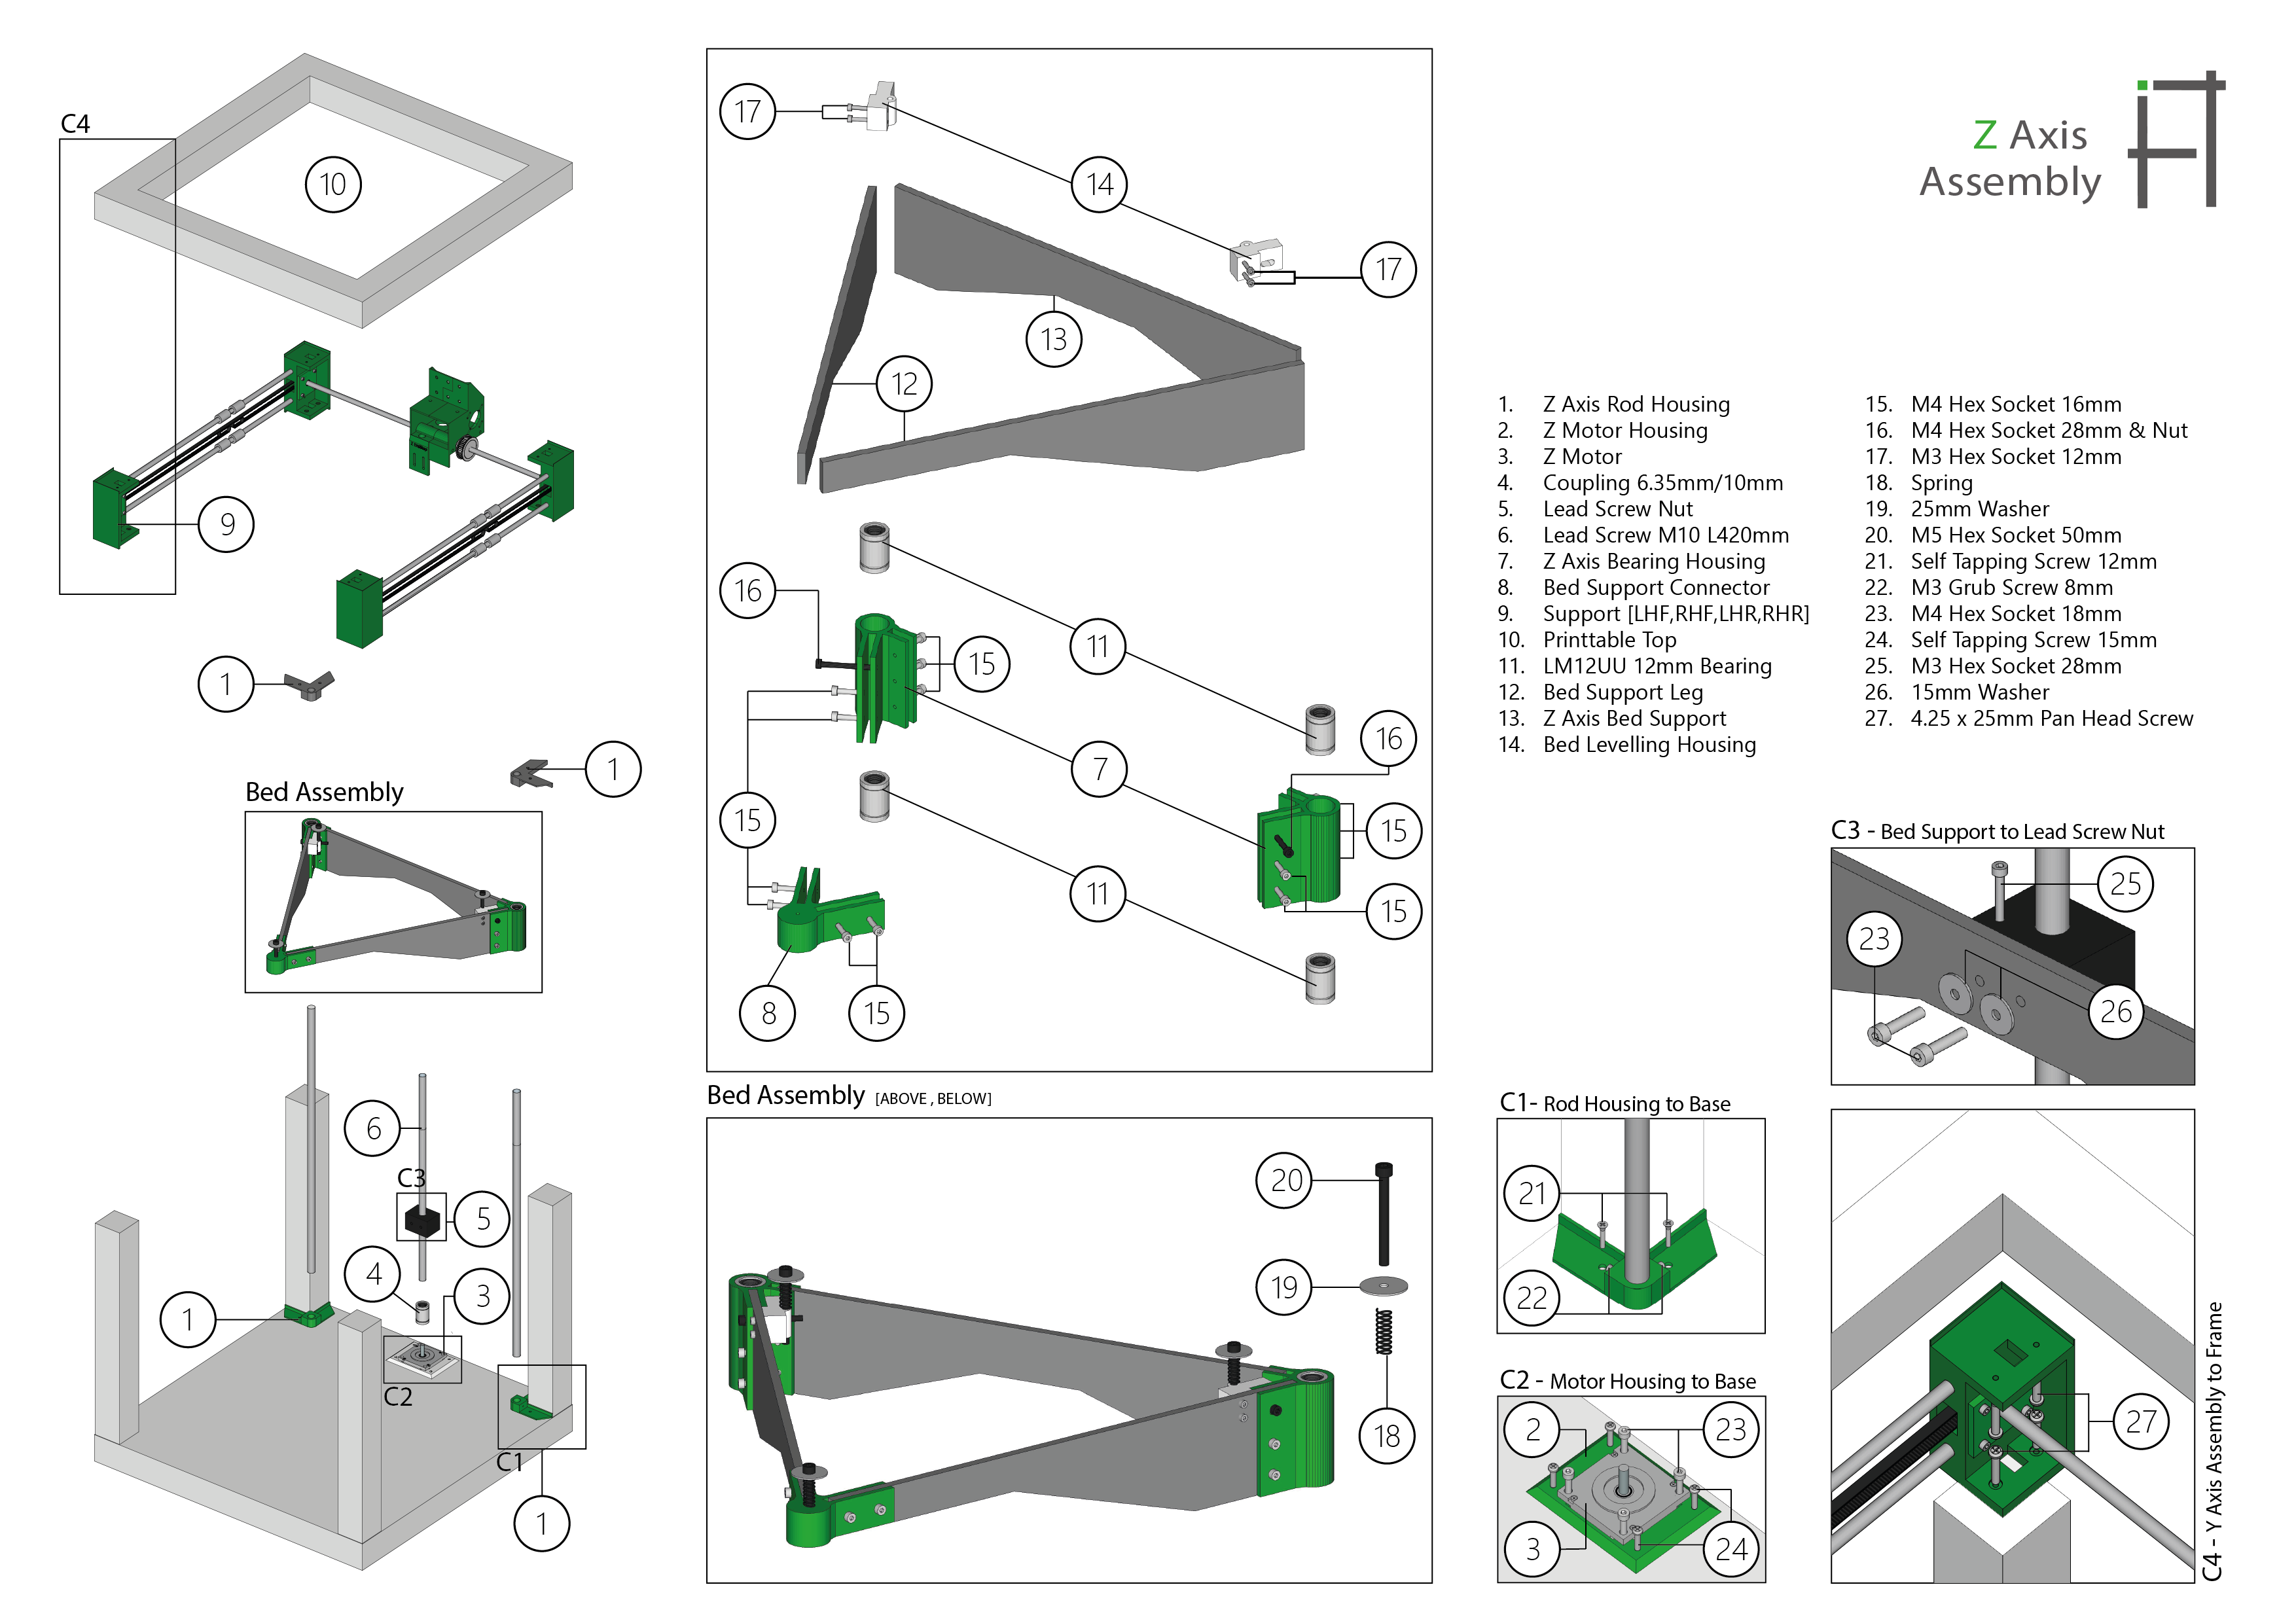 Picture of Assembly Drawings and Video Animations